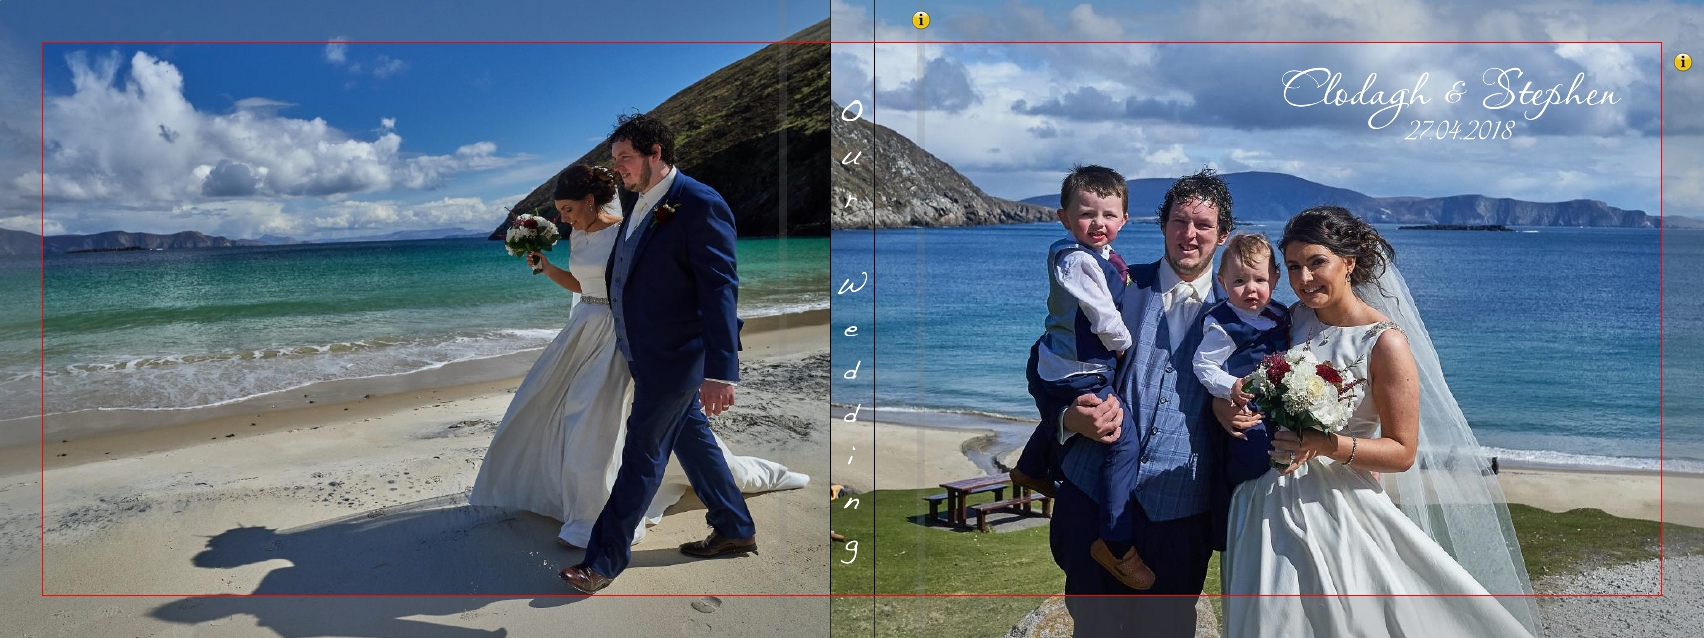 achill island wedding mayo